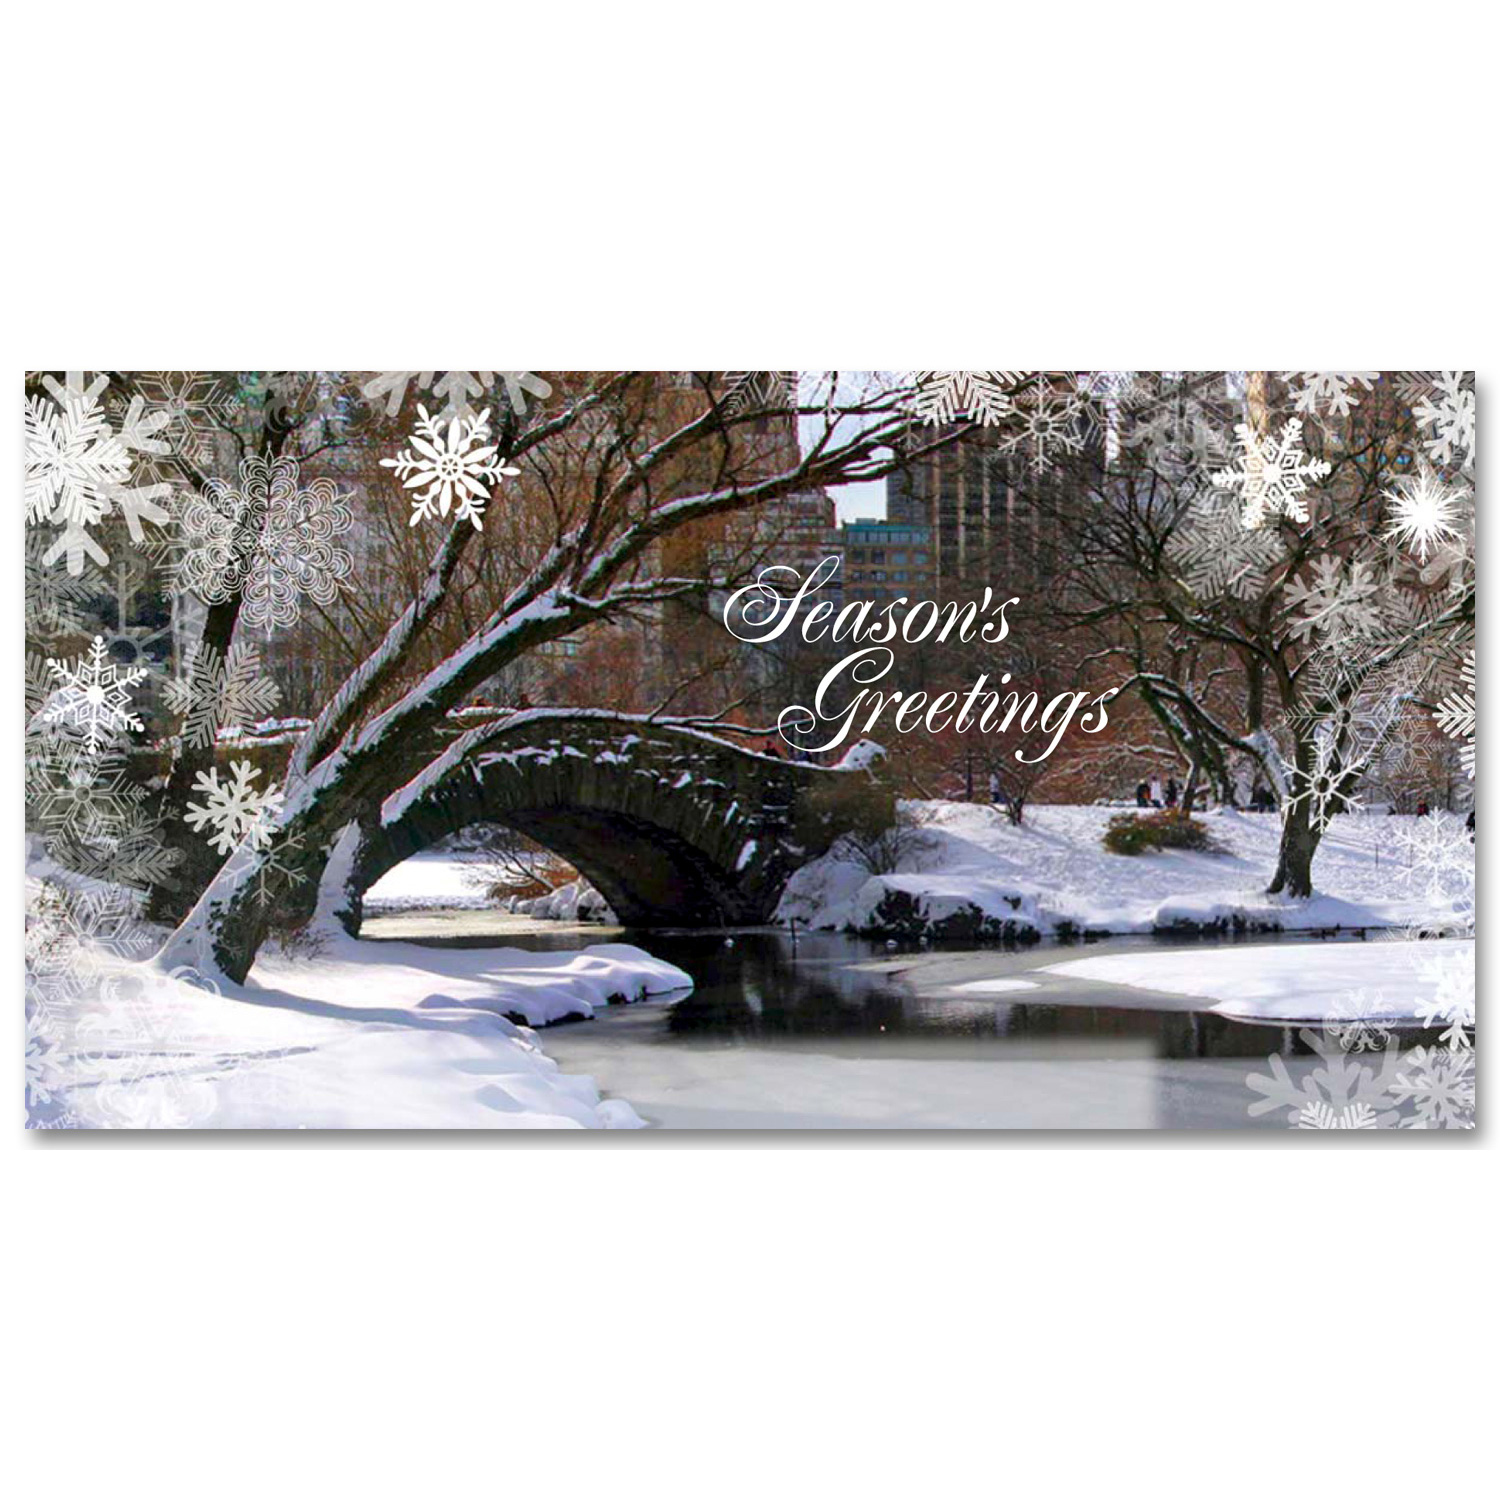 Holidays Money Greeting Cards Holders – Love Bridge Panorama in Central Park –  Set of 6 Cards, 6 Envelopes. Holidays in NYC Collection